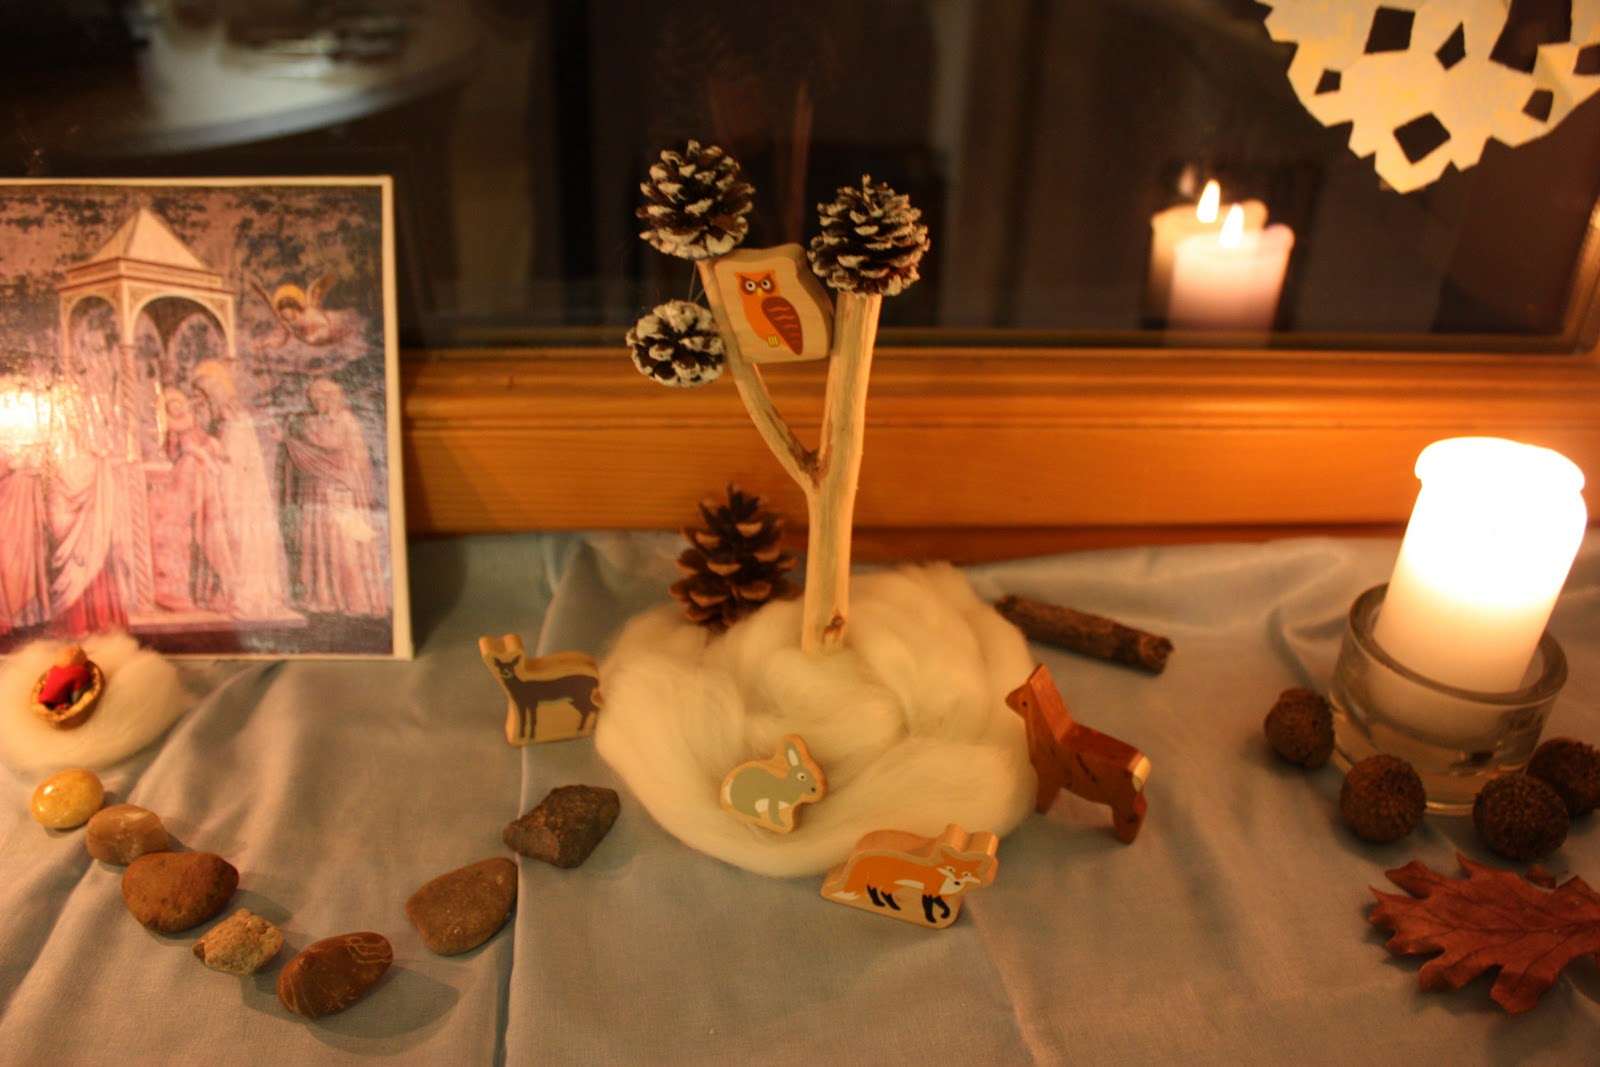 Winter nature table - Our Christ Candle Is Surrounded By Acorns That We Found On Our Recent Trip To Georgia A Type Of Acorn That We Haven T Seen Here Where Winter Looks And